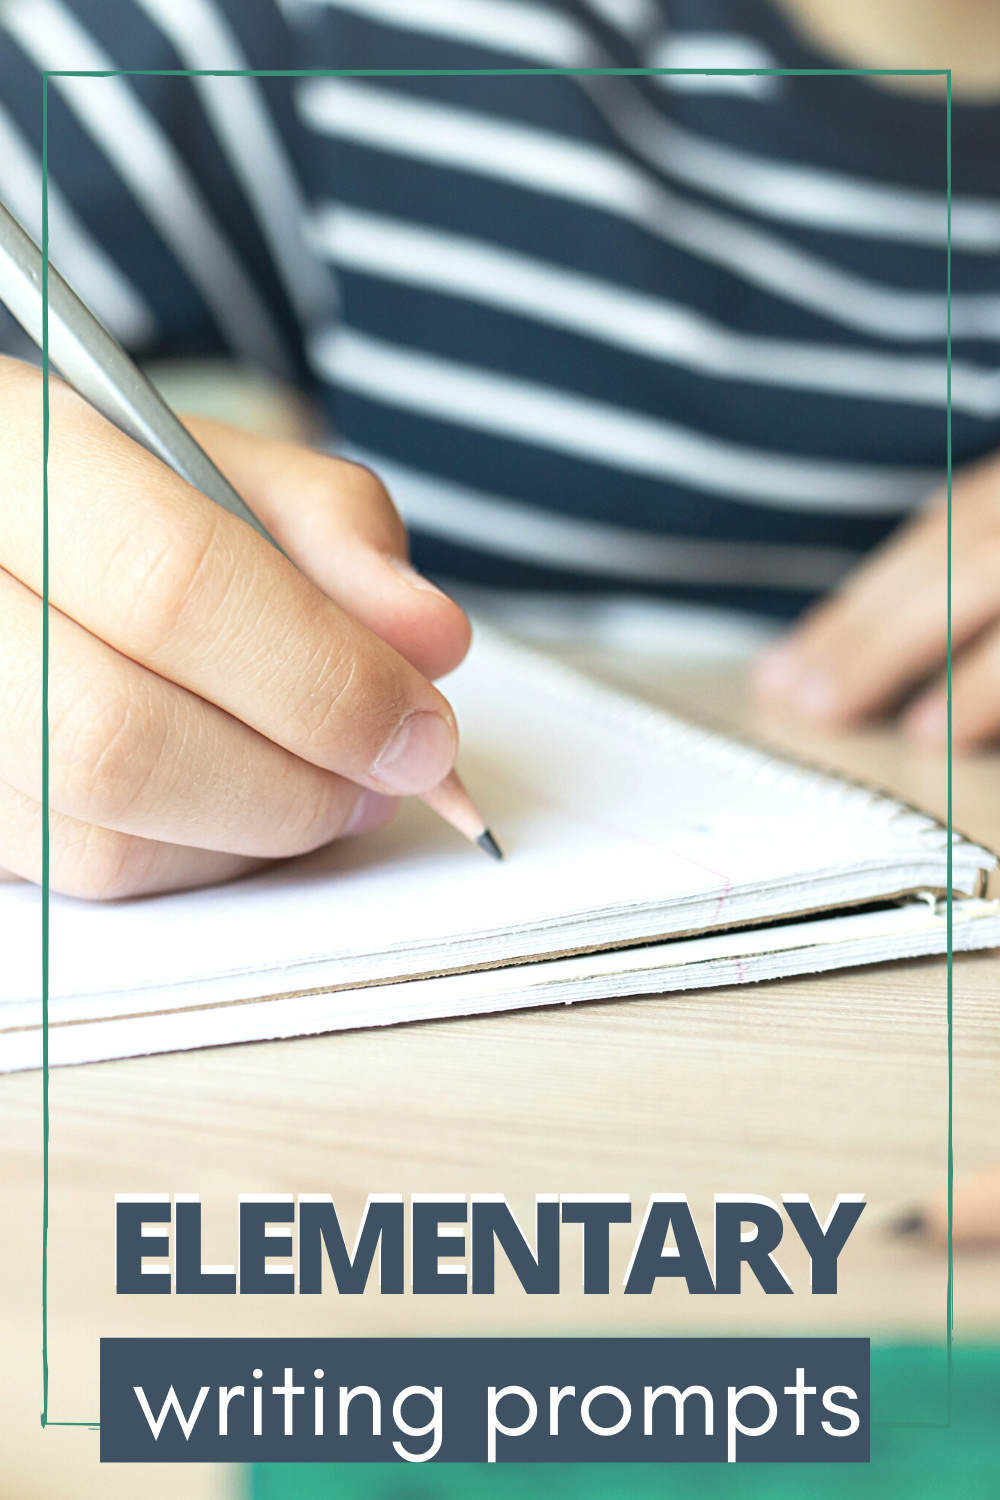 Get your student's creative juices flowing with these writing prompts for elementary students. Find seasonal, holiday, and every day prompts for kids.